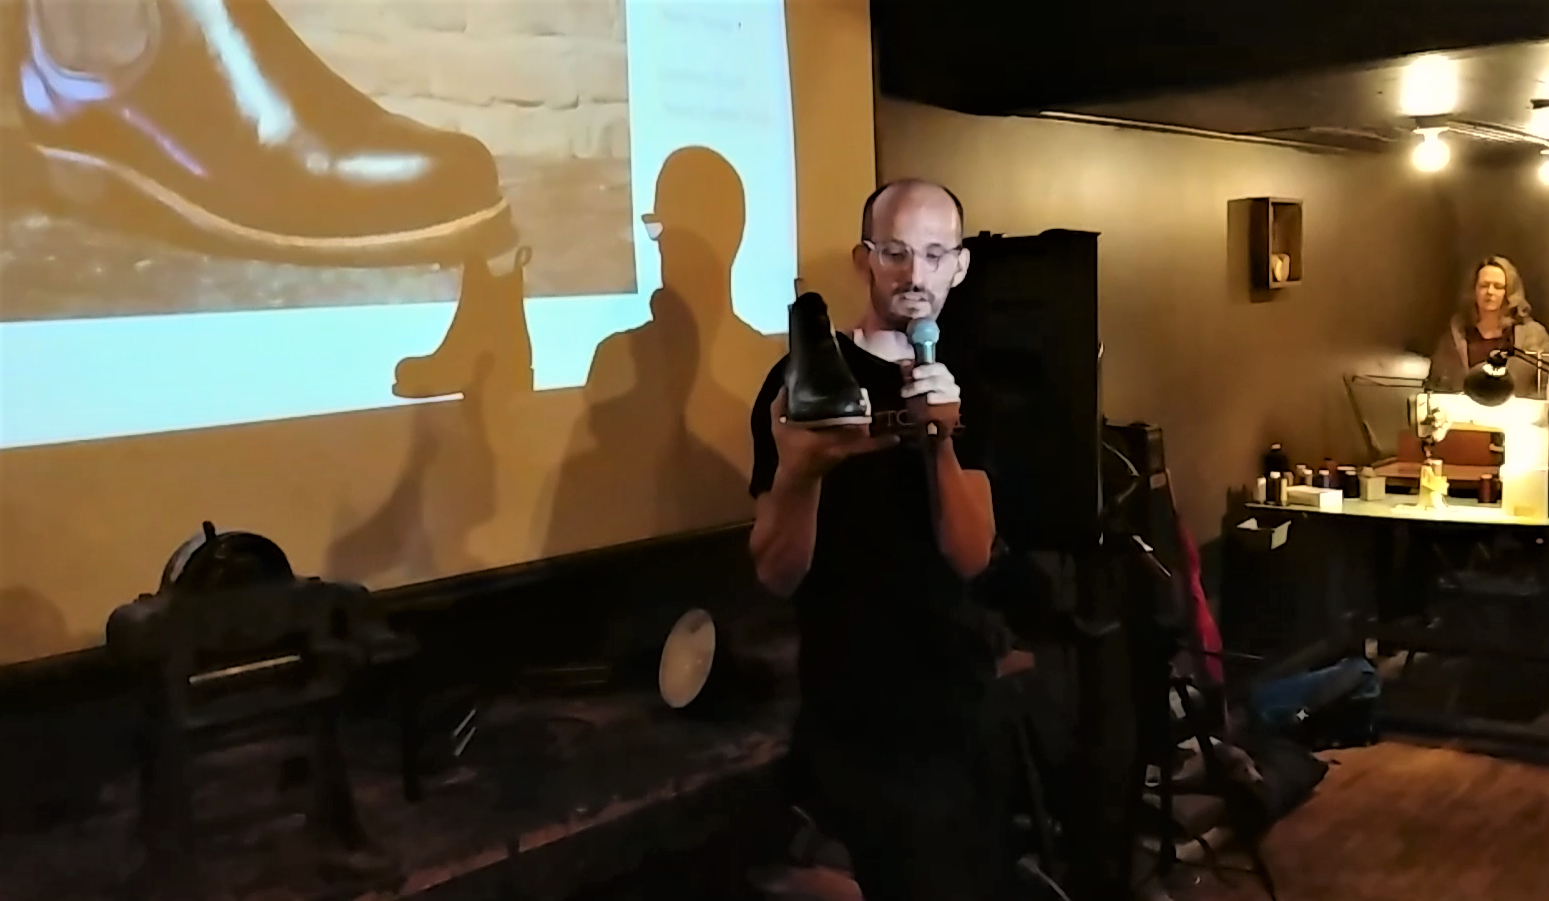 Launch Night, Oct 11th - Tim Talks about the new Bishop boot and the vision for Sutorial.